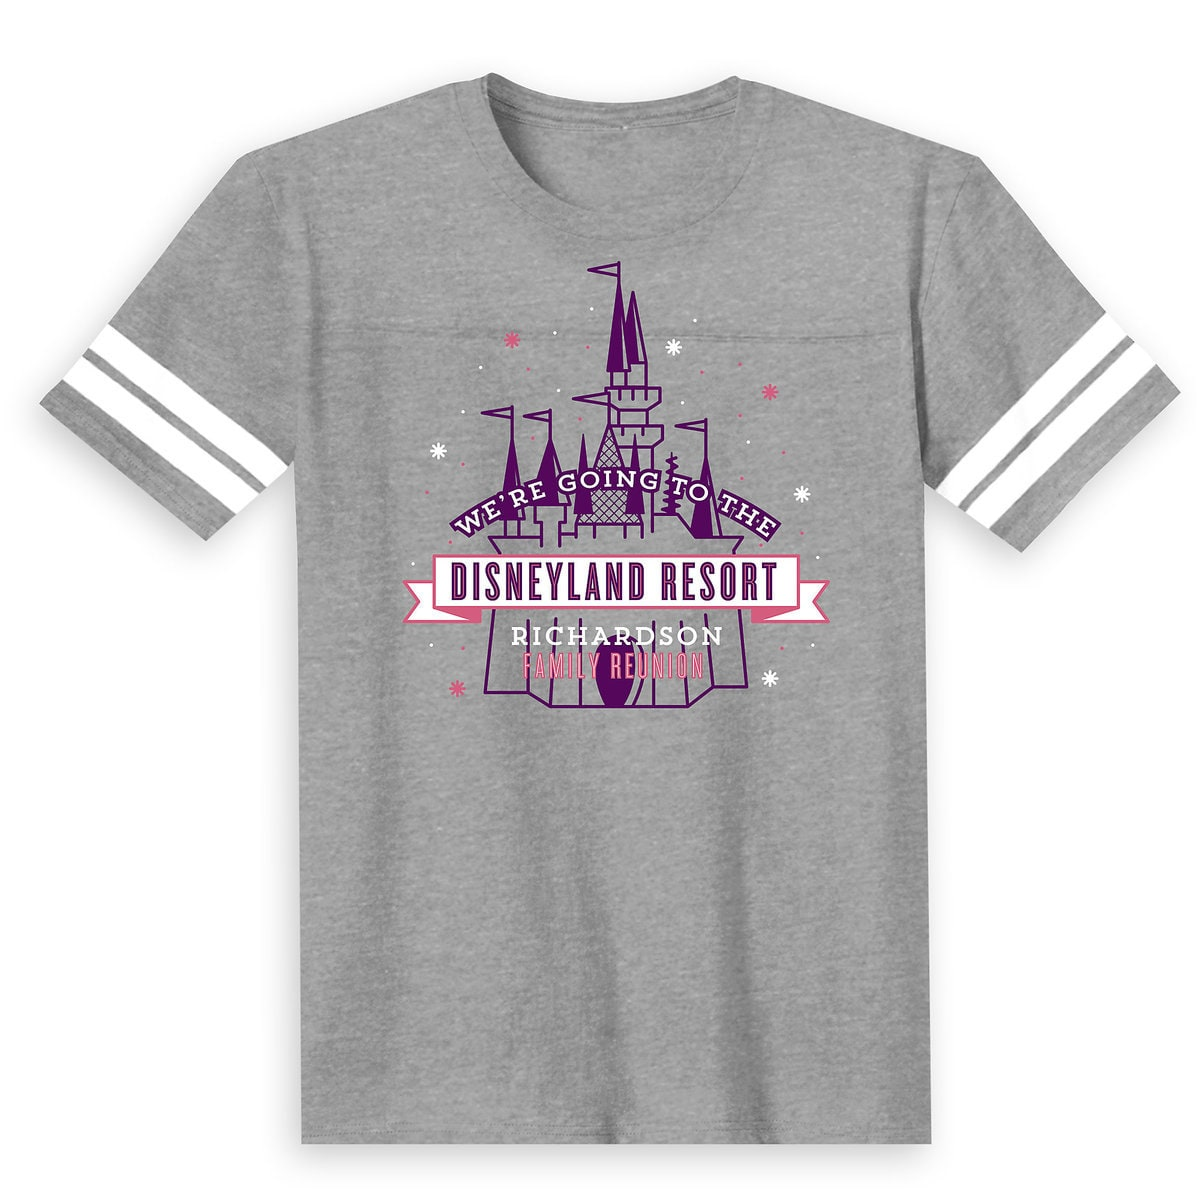 6fe78feec Product Image of Kids' Sleeping Beauty Castle Family Reunion Football T- Shirt - Disneyland